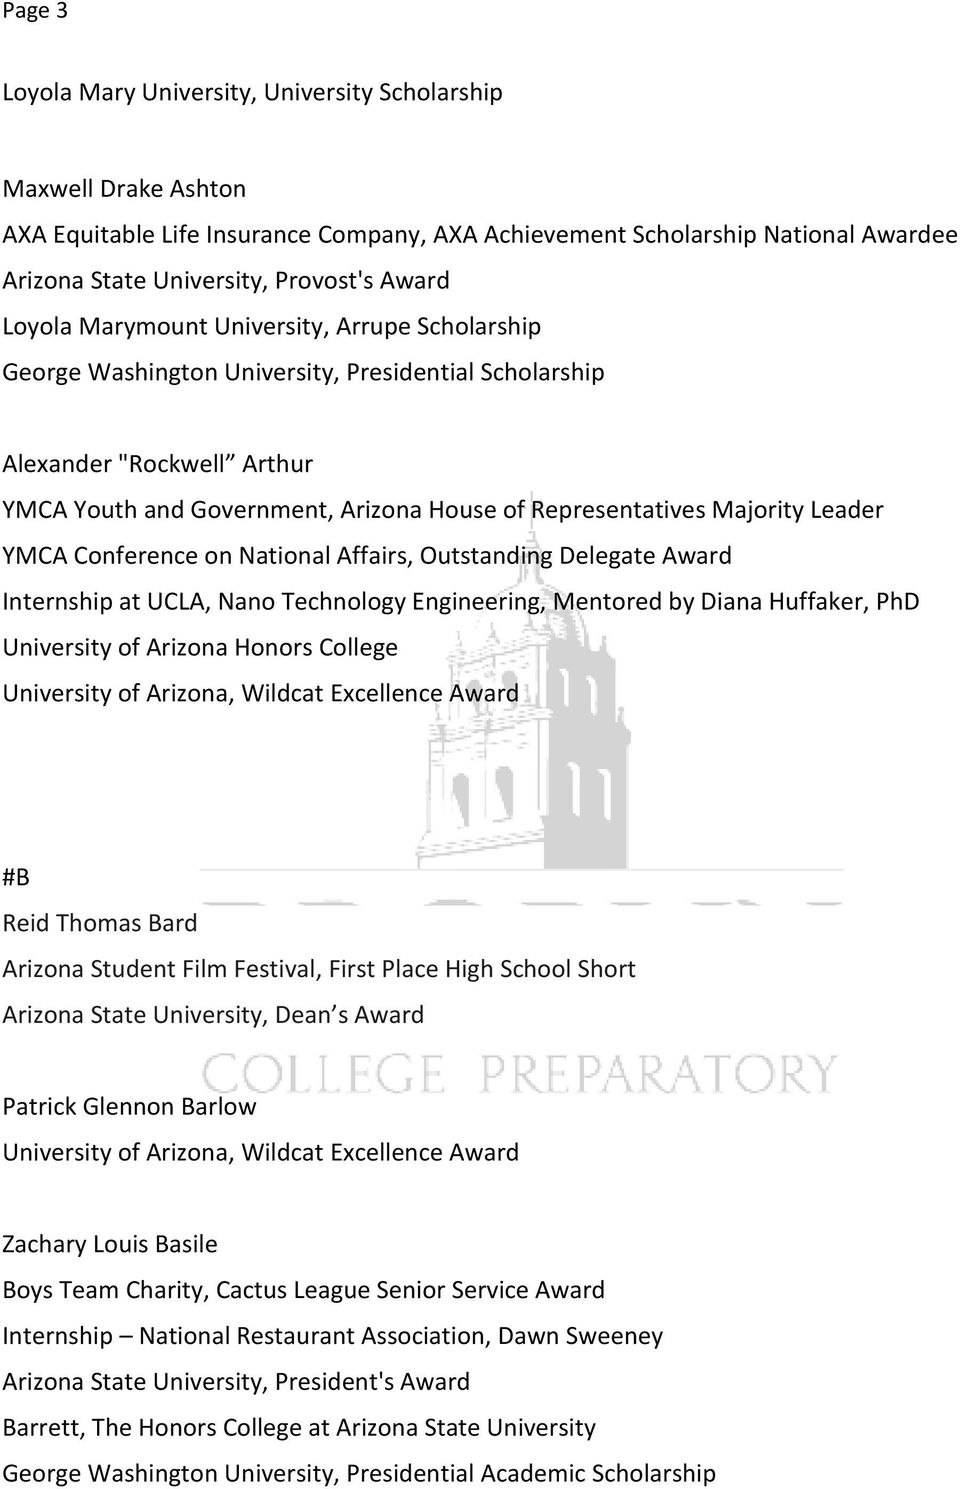 Leader YMCA Conference on National Affairs, Outstanding Delegate Award Internship at UCLA, Nano Technology Engineering, Mentored by Diana Huffaker, PhD #B Reid Thomas Bard Arizona Student Film